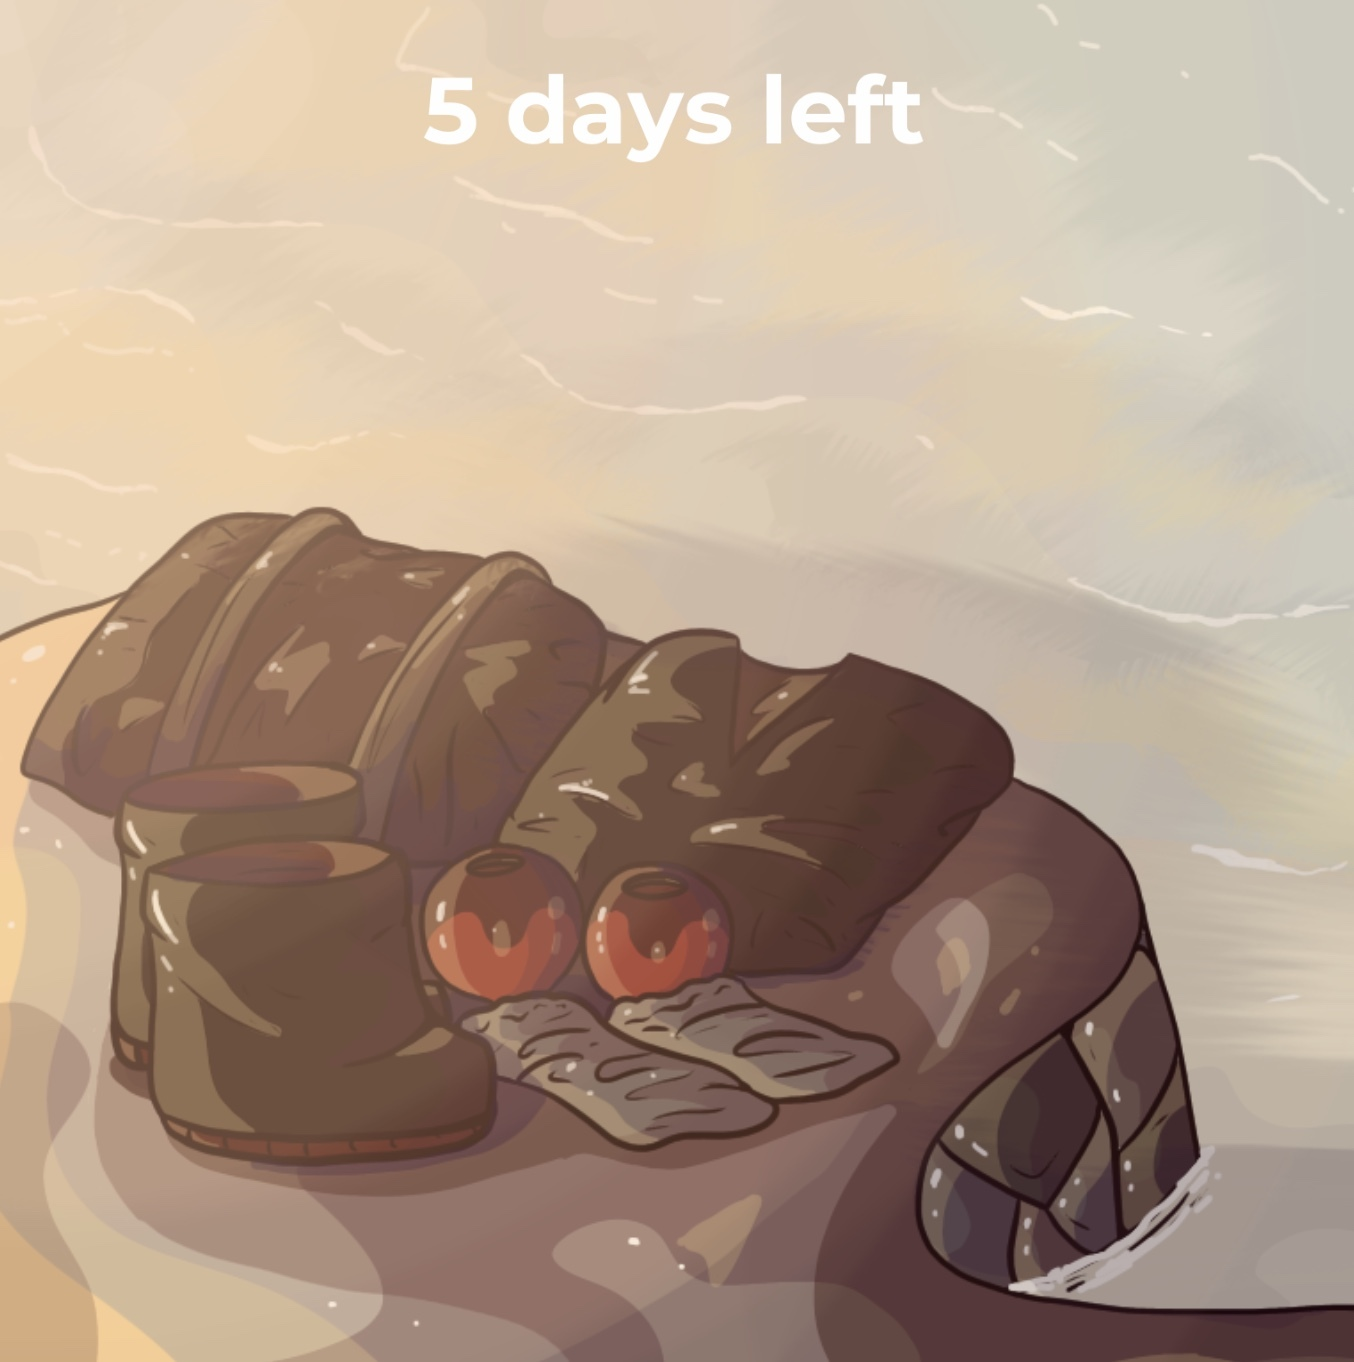 Promo for first episode! 5 days left